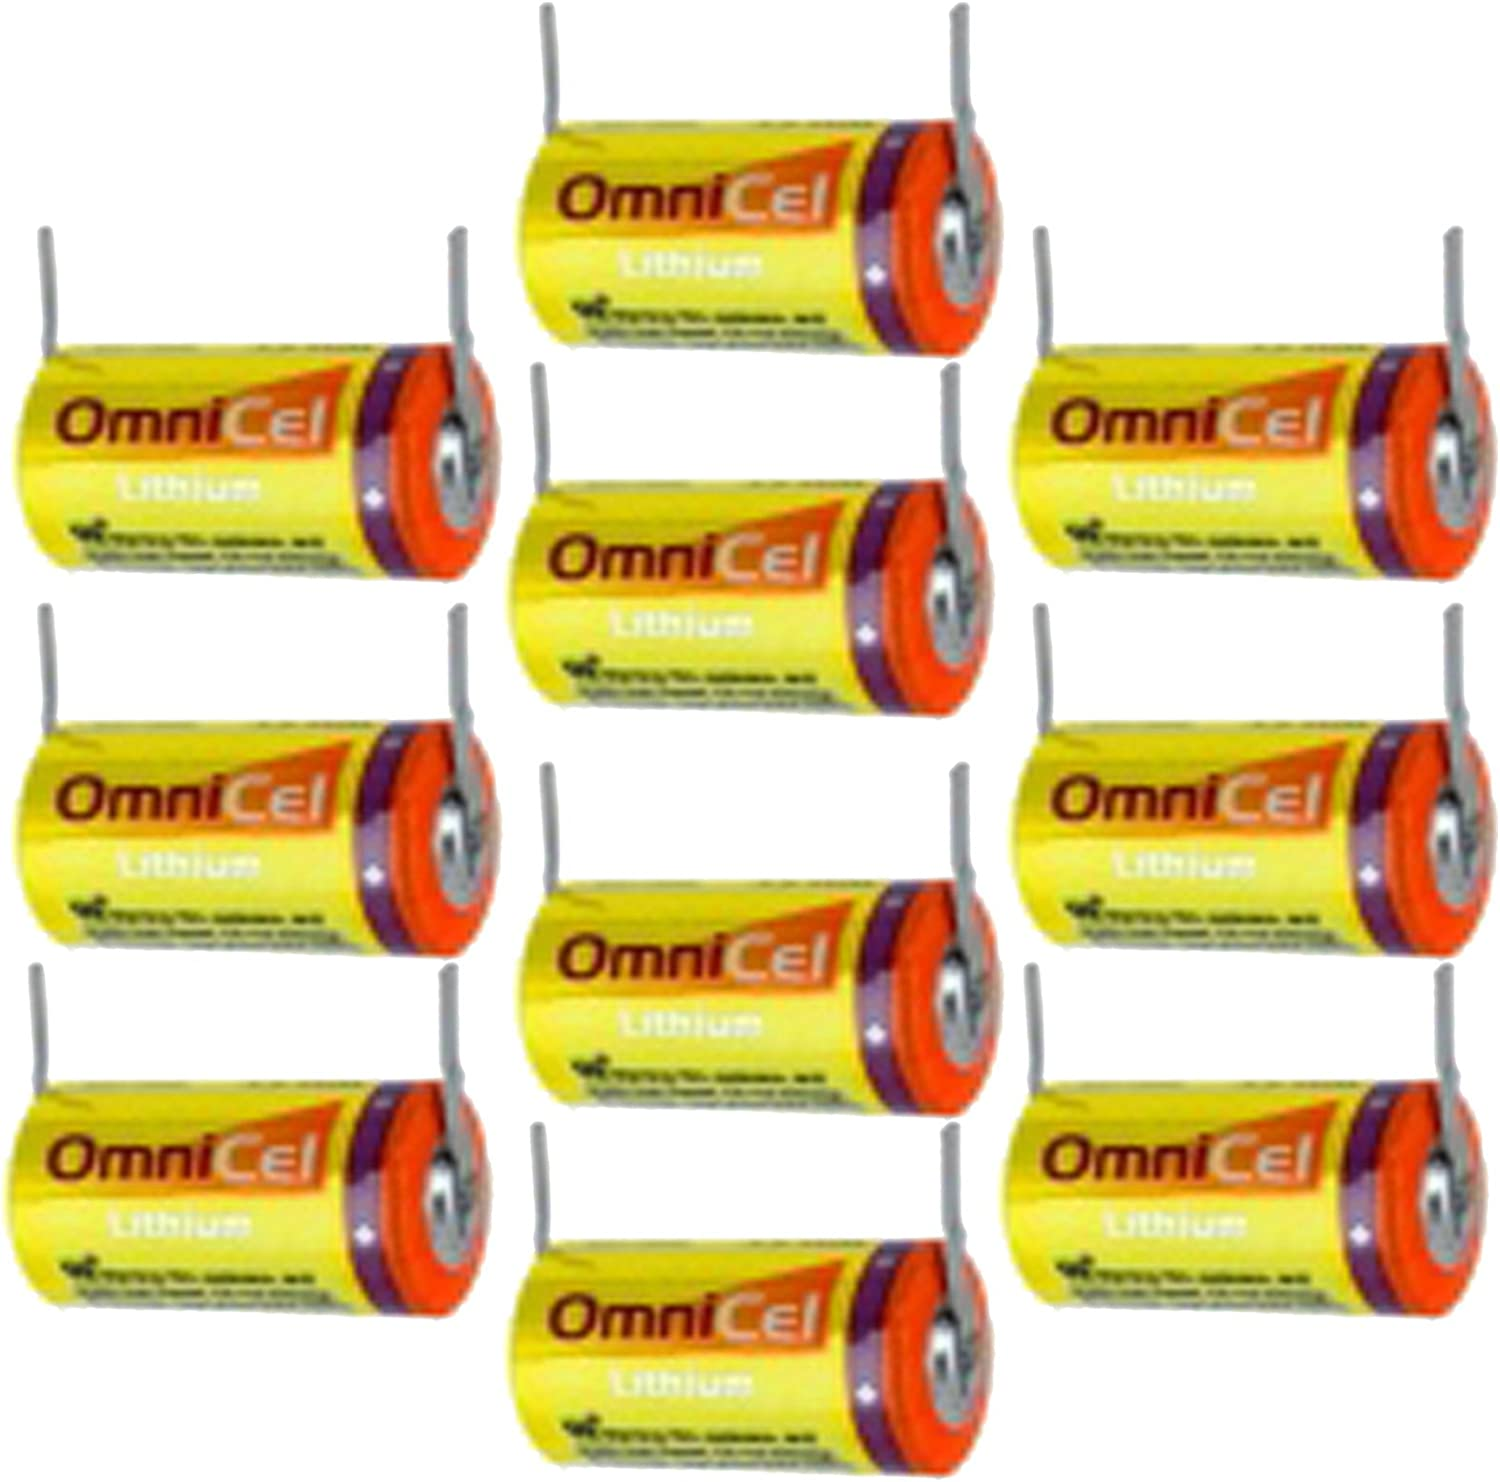 10x OmniCel ER14335 3.6V 1.65Ah 2/3Aein Lithium hoch Energy Battery w/Tabs für Emergency Backup, Data Collection, AMR, Smoke Alarms, Carbon Monoxide Detectors, Intrusion Sensors, Fleet Monitoring